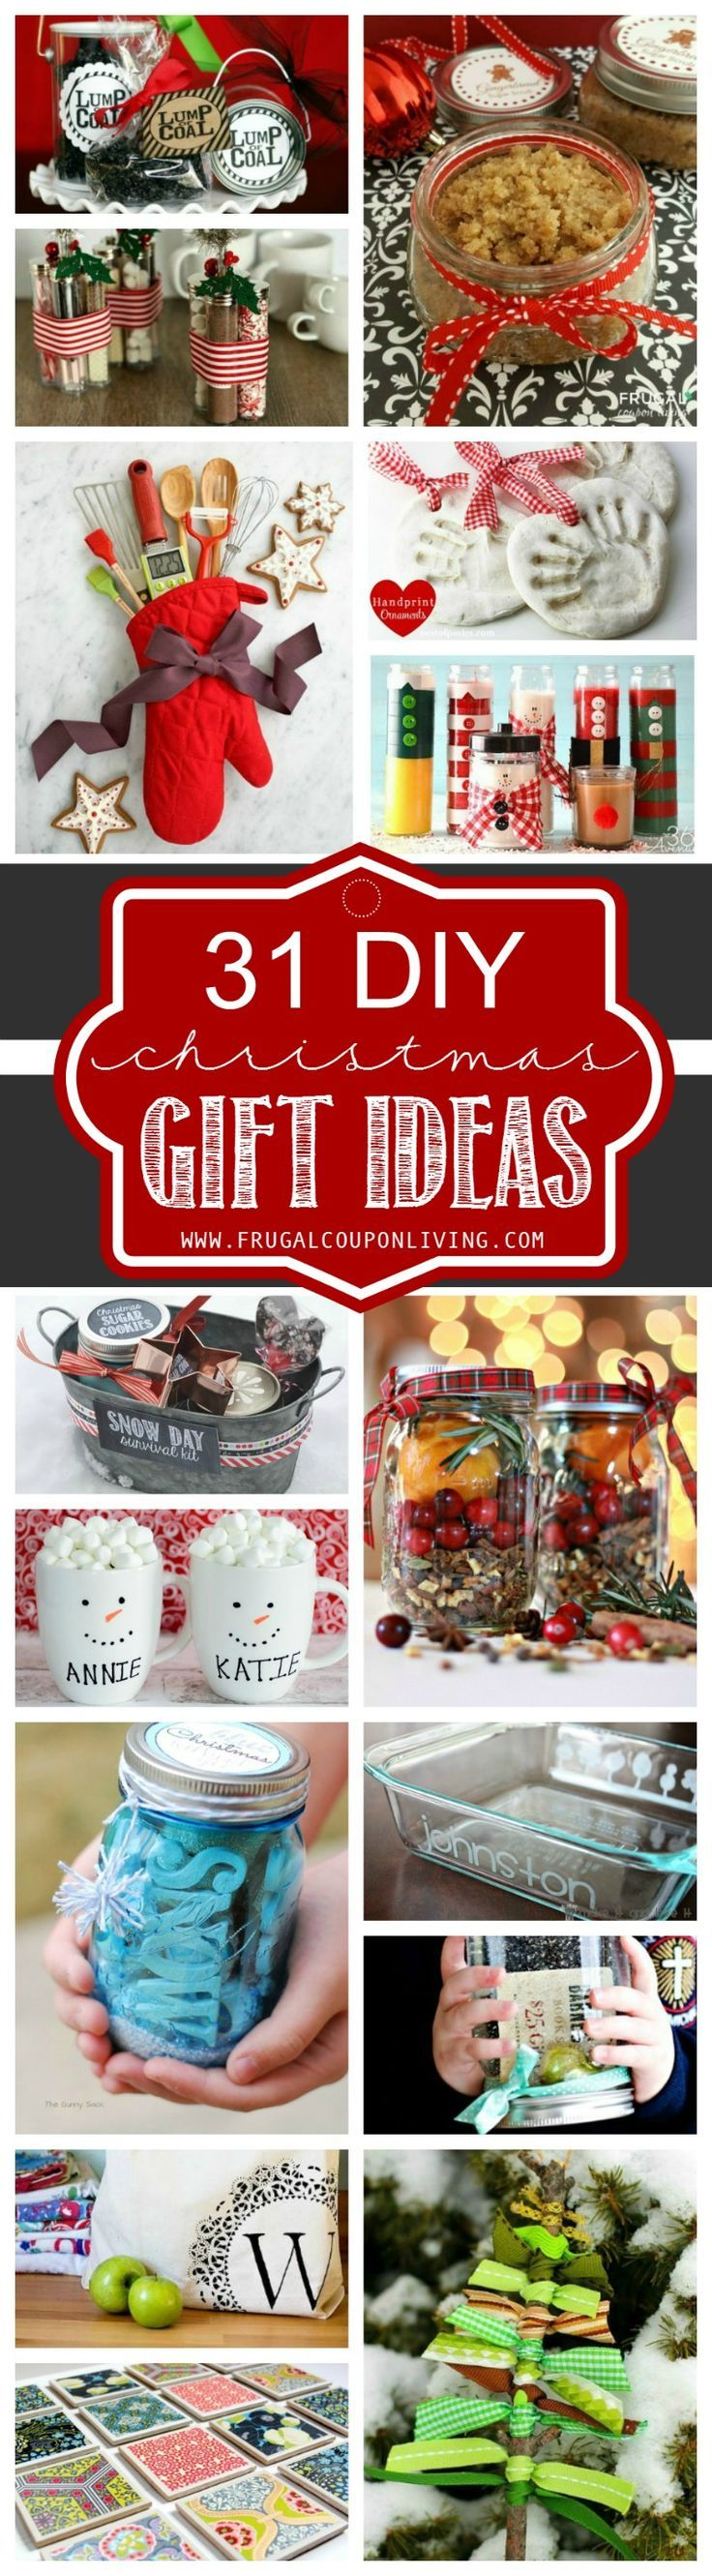 Best 25+ Homemade christmas gifts ideas on Pinterest | Homemade ...